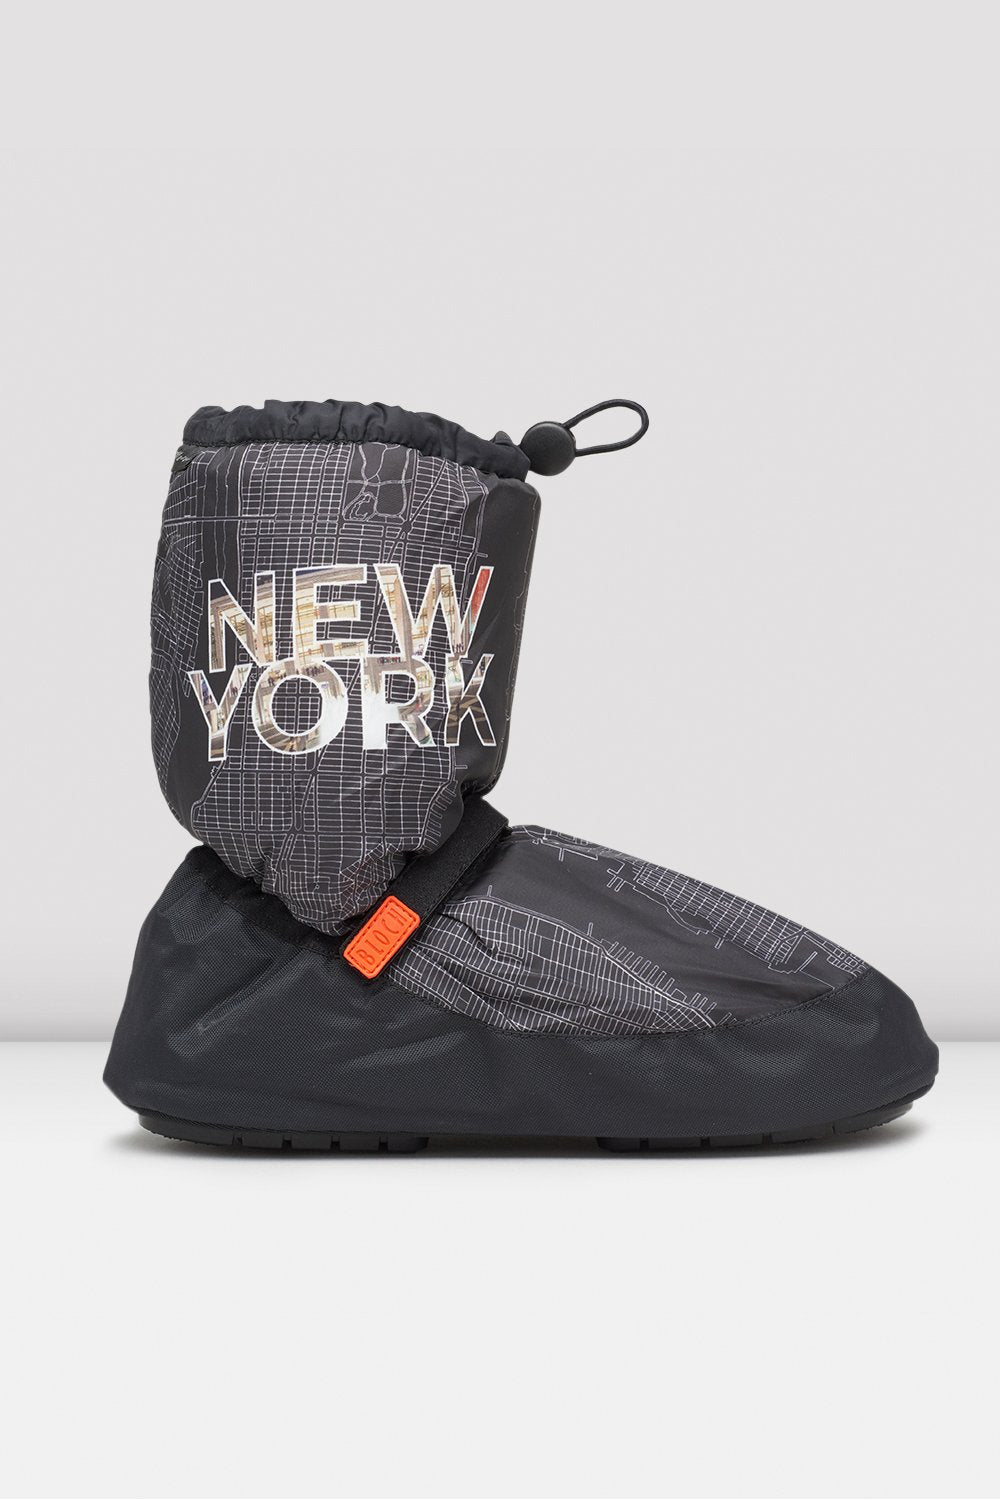 Bloch New York City Map Multi-function Warm Up Booties single shoe side view